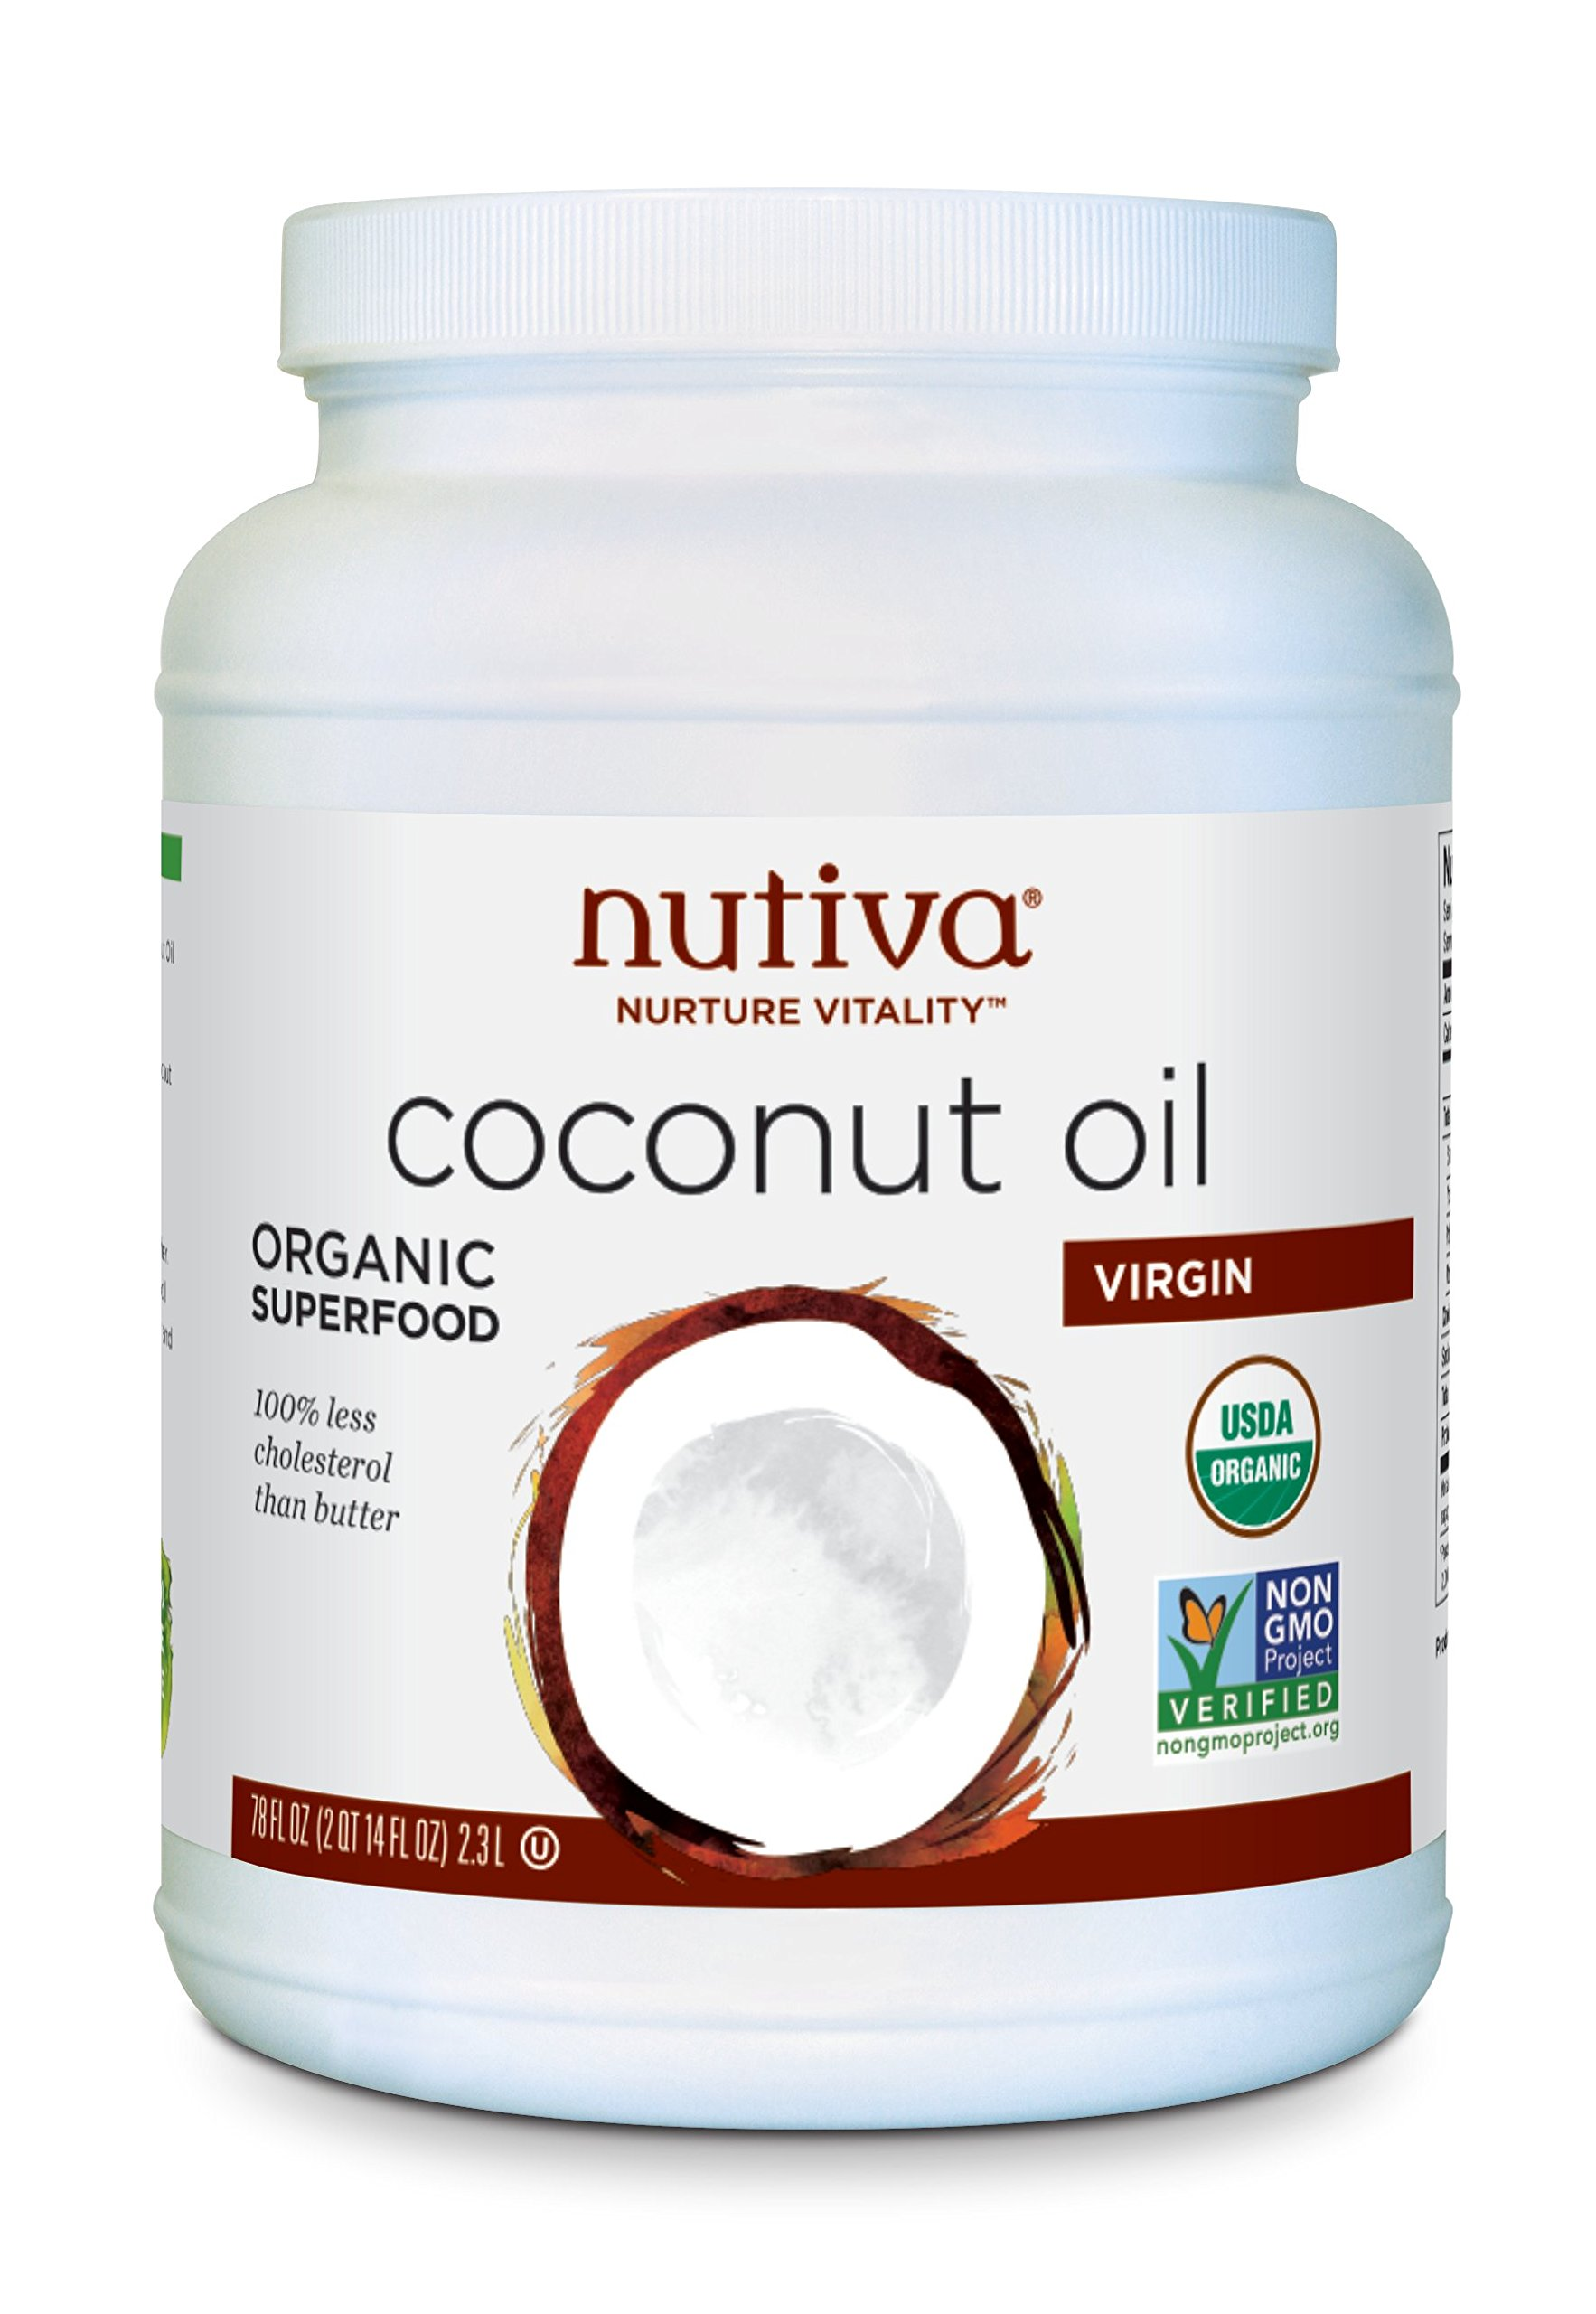 Nutiva Organic, Cold-Pressed, Unrefined, Virgin Coconut Oil from Fresh, non-GMO, Sustainably Farmed Coconuts, 78 Fluid Ounces